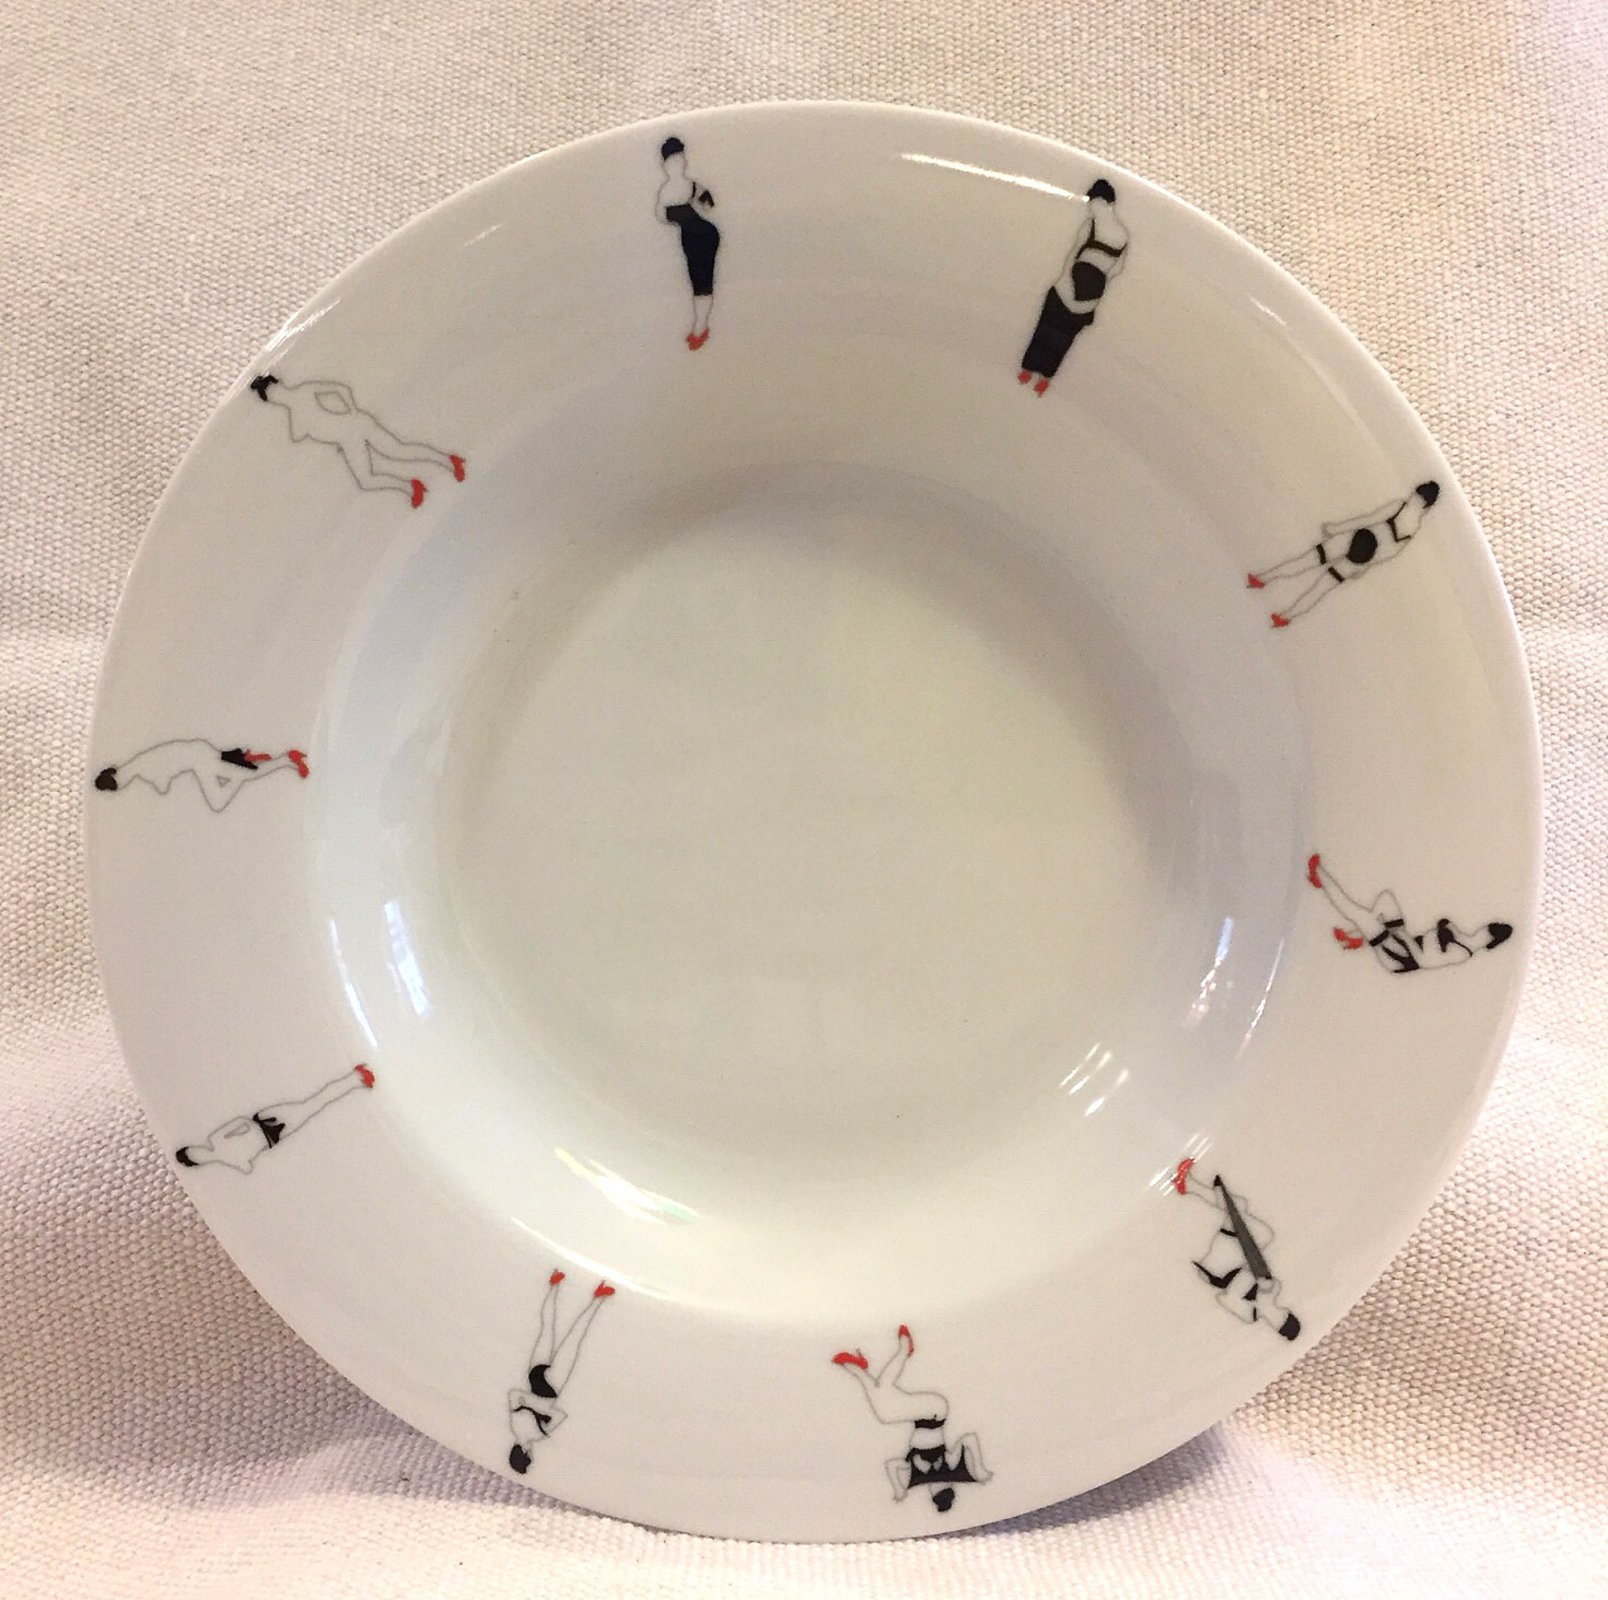 Marco Lodola Stripper Dancer Zeitler Francis Germany 1998 Porcelain Dish Plate